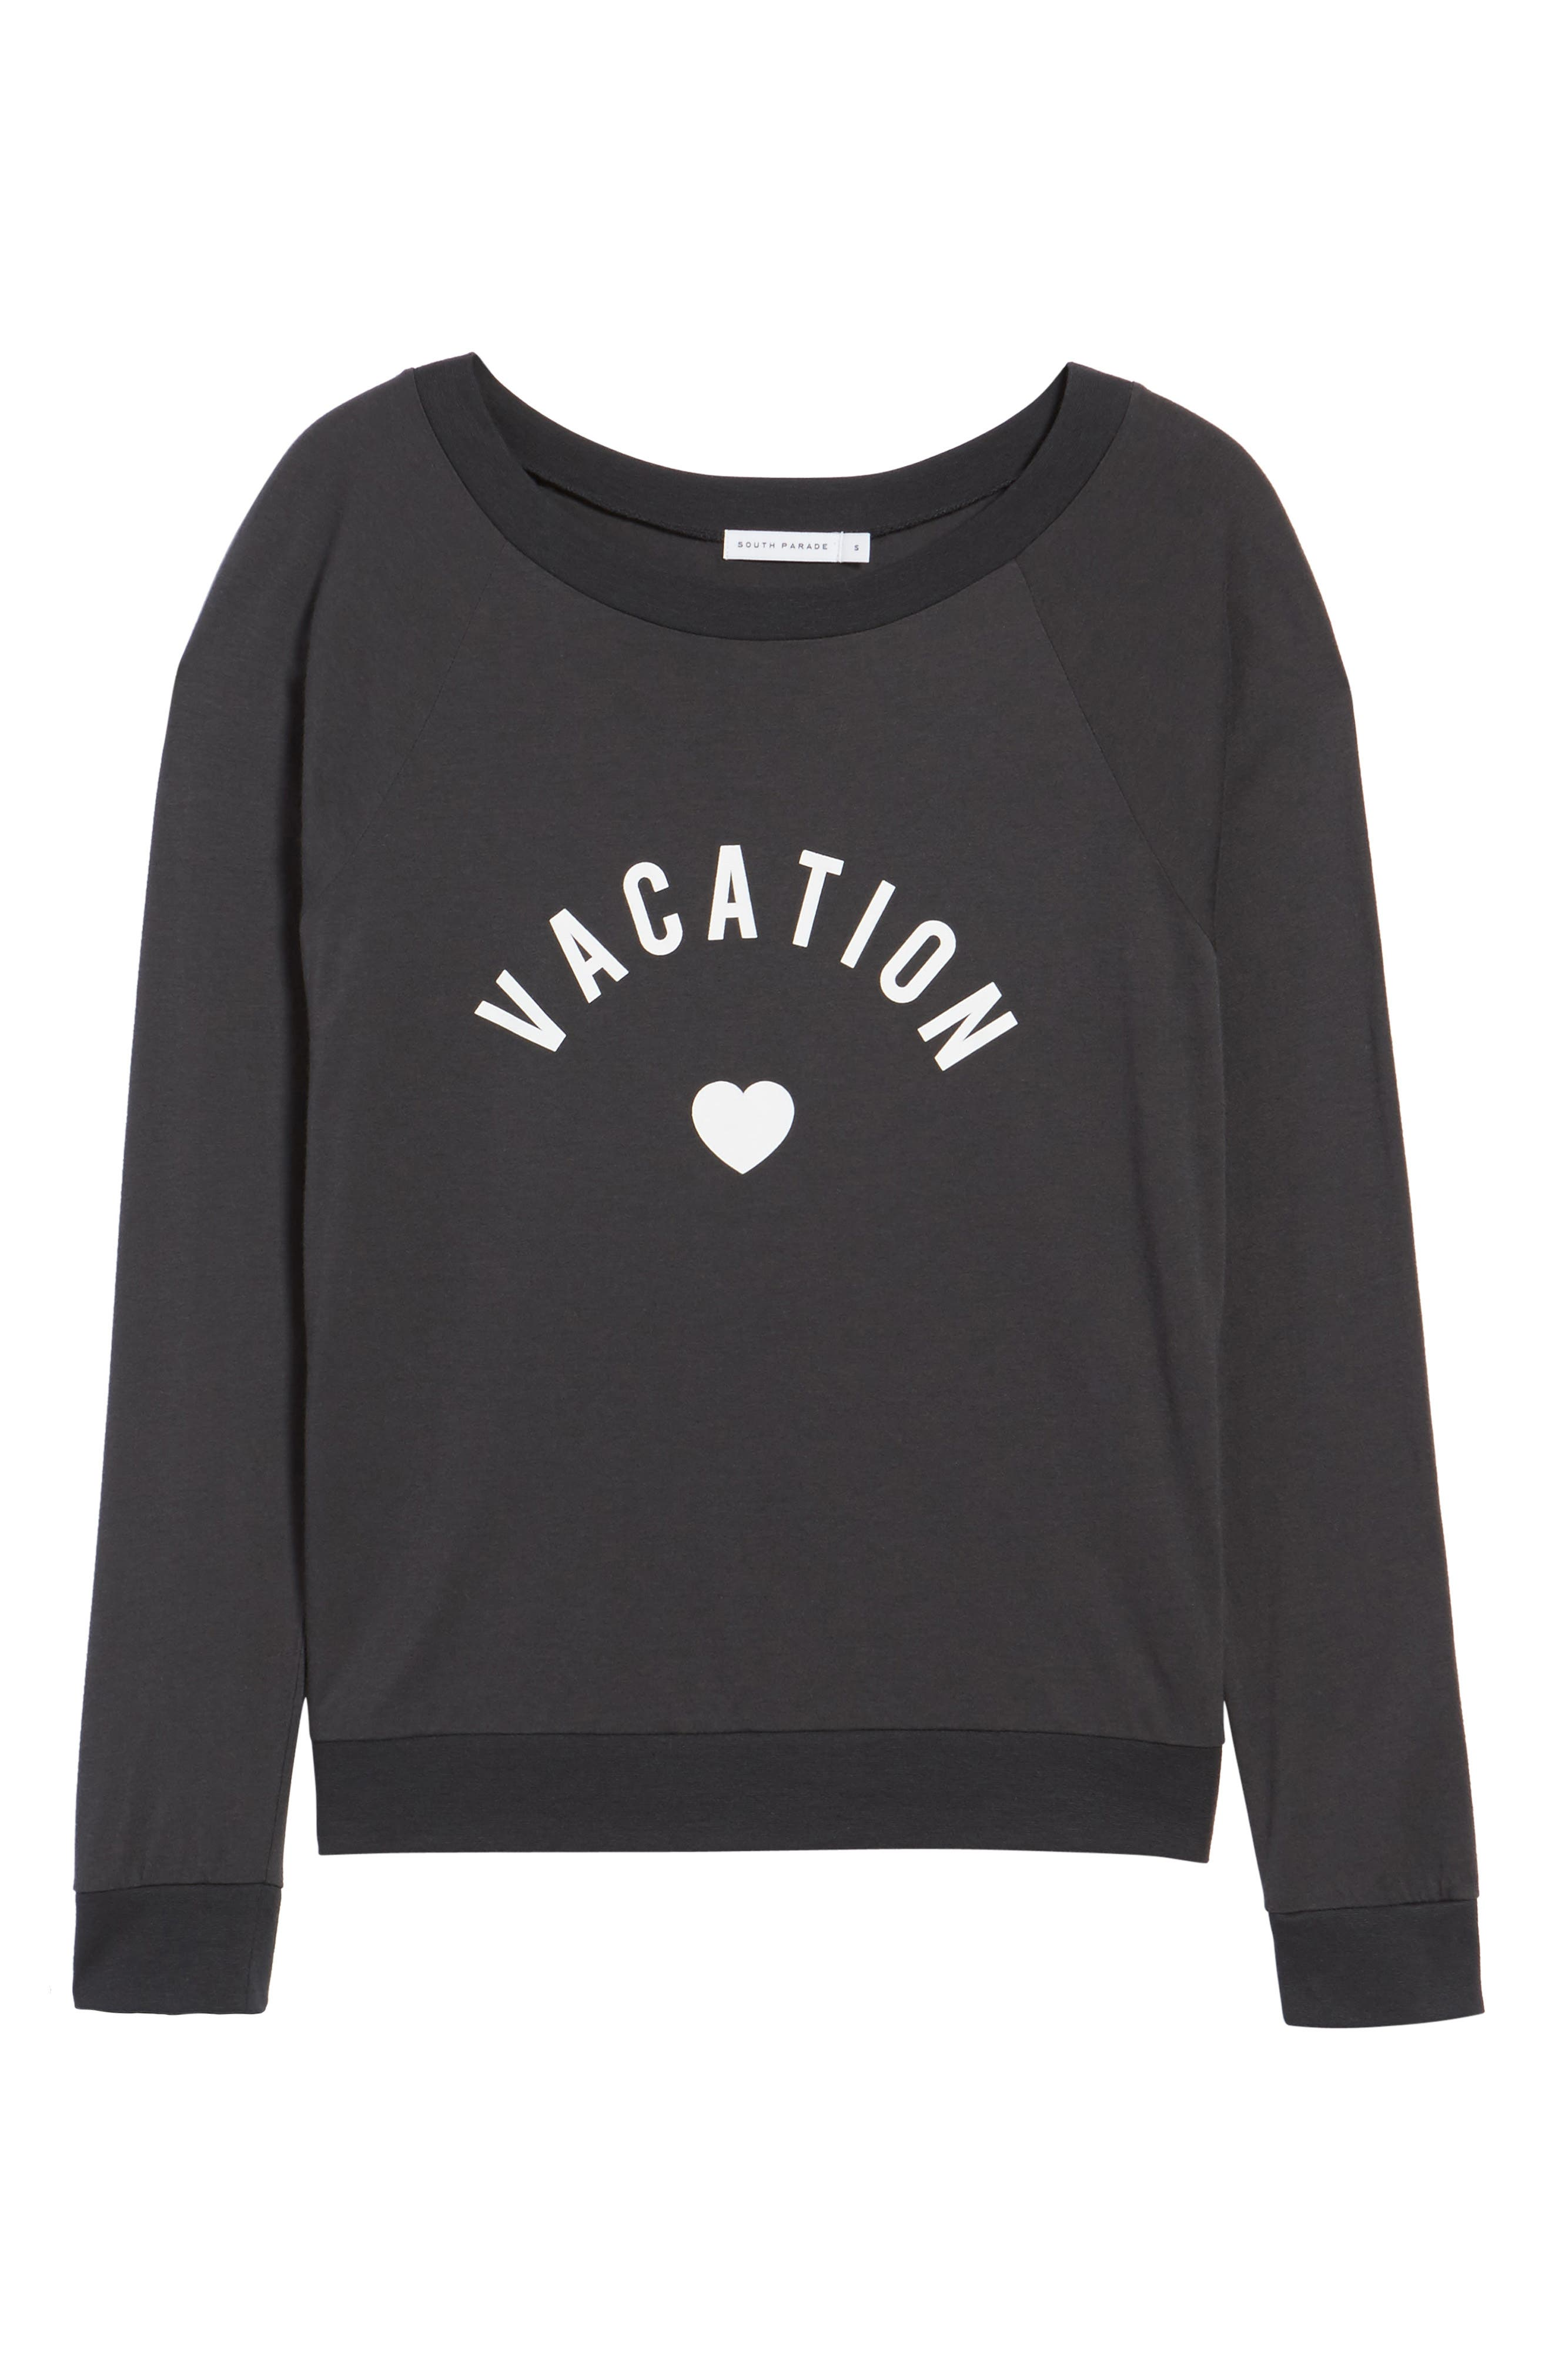 Candy - Vacation Pullover,                             Alternate thumbnail 6, color,                             BLACK